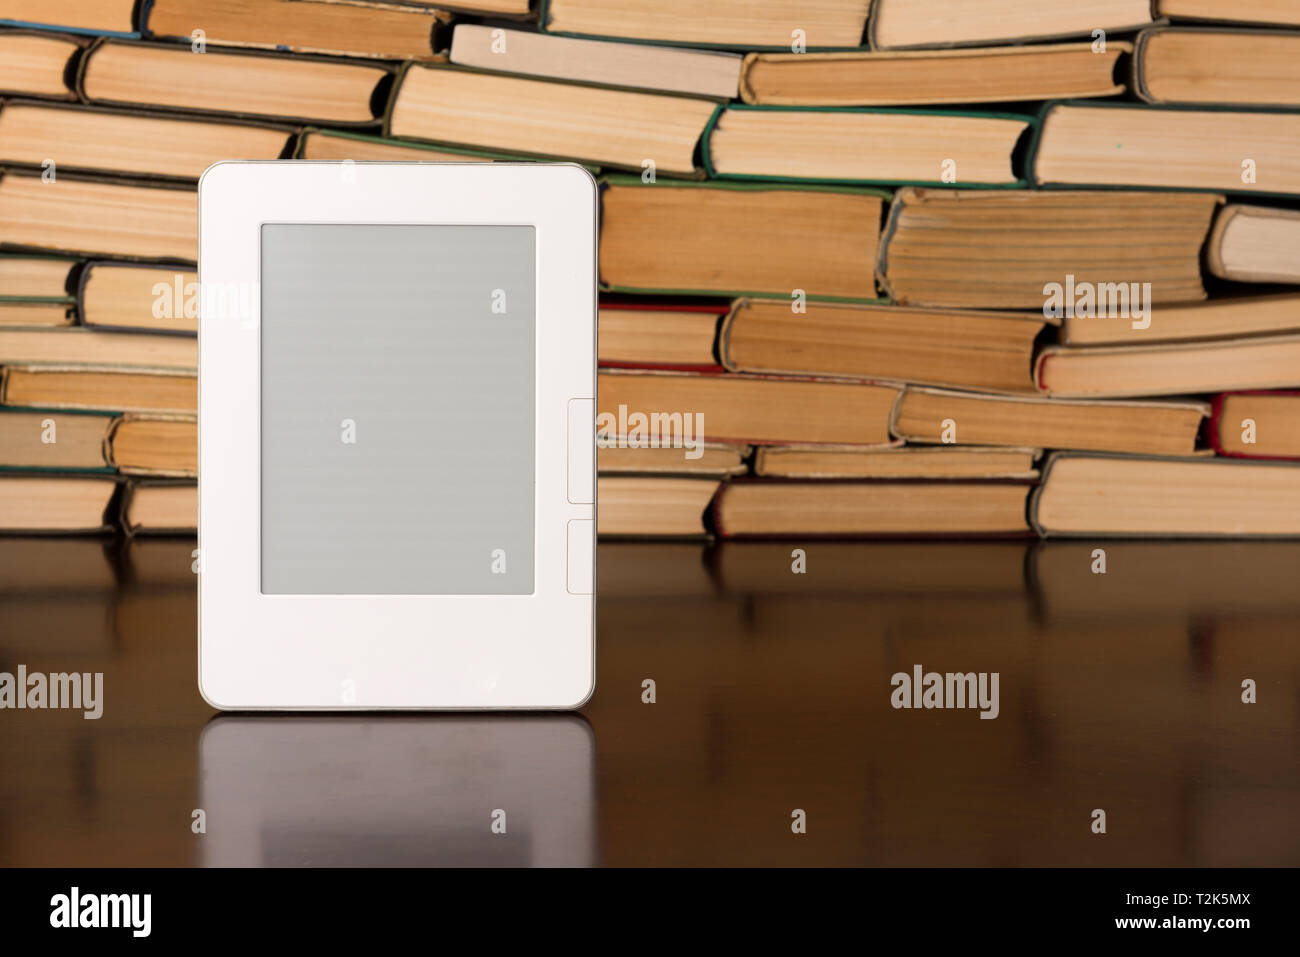 Electronic book on background of regular old books - Stock Image